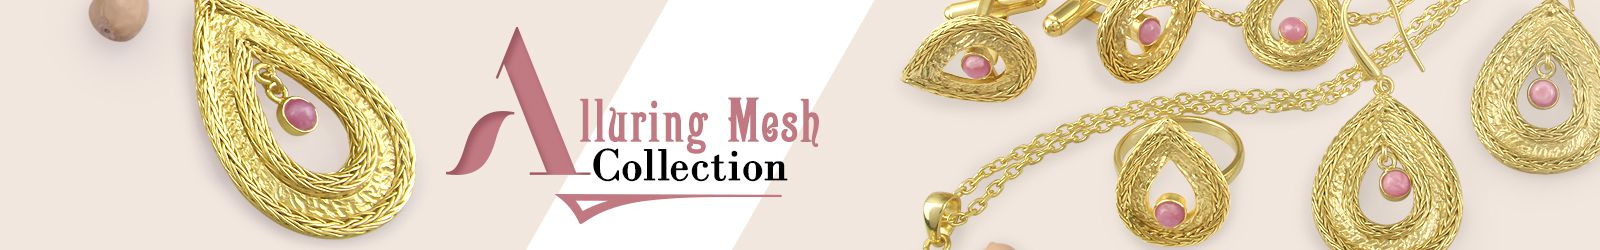 Alluring Mesh Jewelry Collection